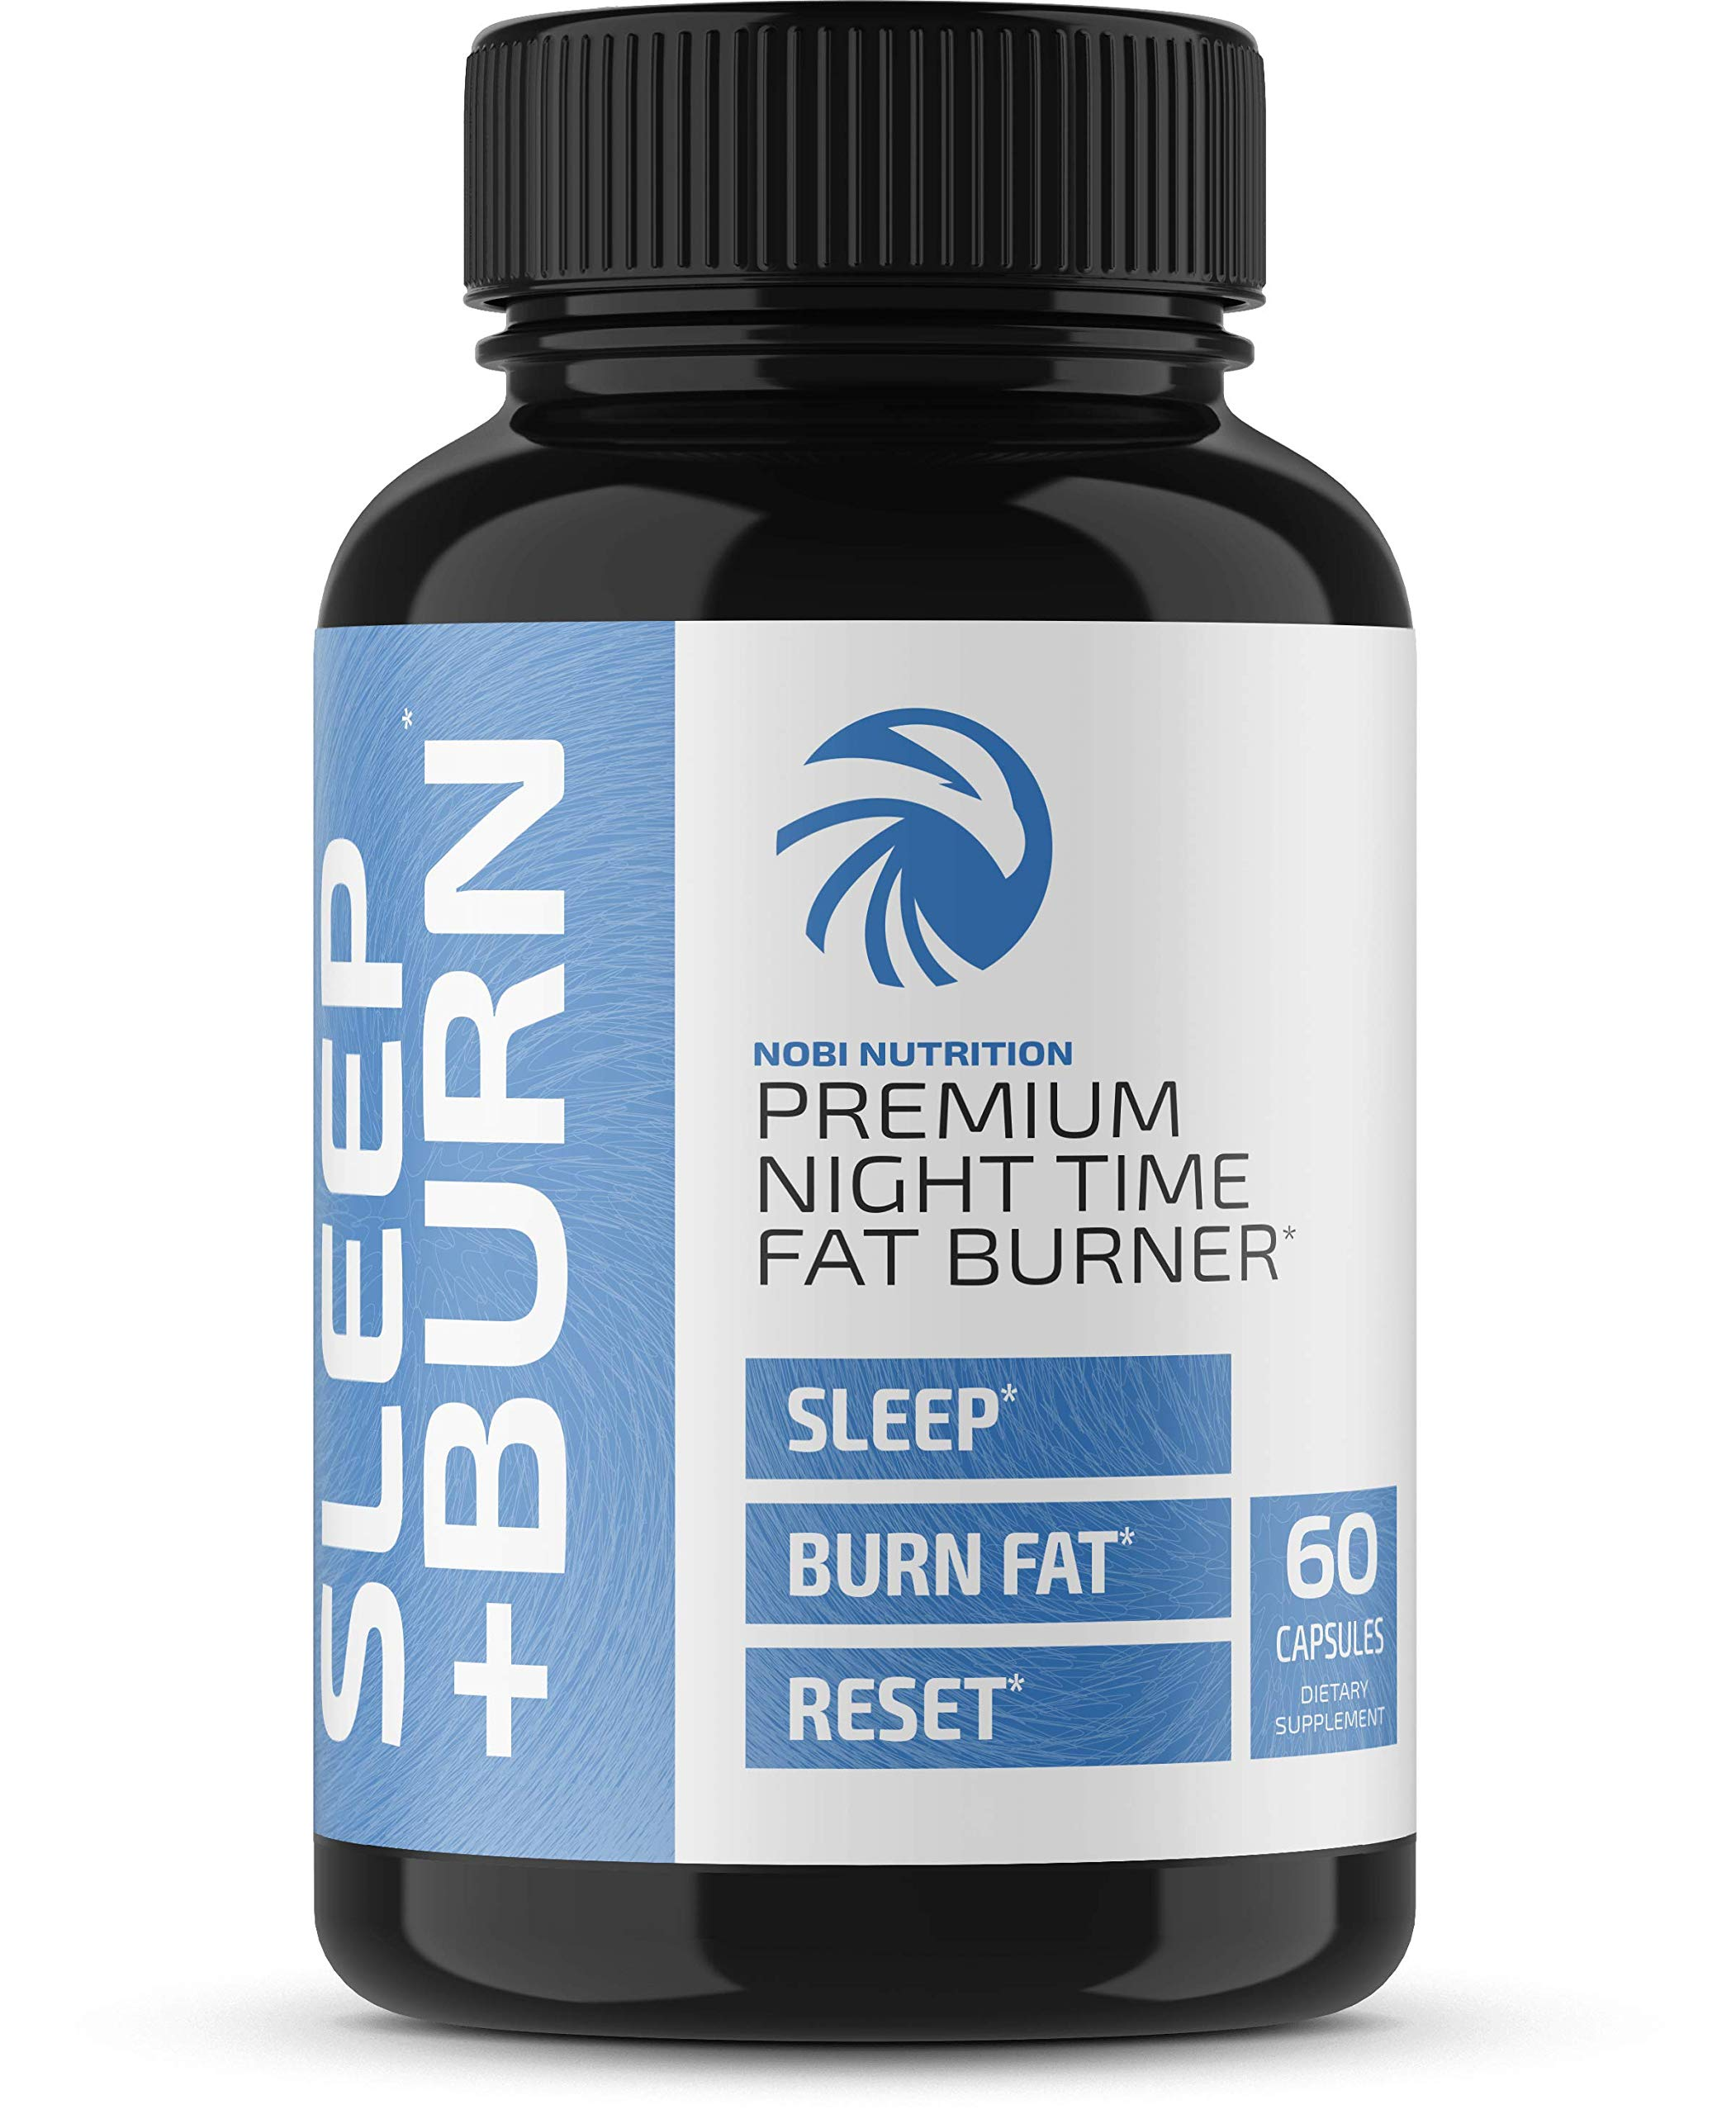 Nobi Nutrition Night Time Fat Burner, Sleep Aid an Appetite Suppressant - Stimulant-Free PM Weight Loss Pills & Metabolism Booster for Men and Women - Healthier Diet Pills - 60 Capsules by Nobi Nutrition